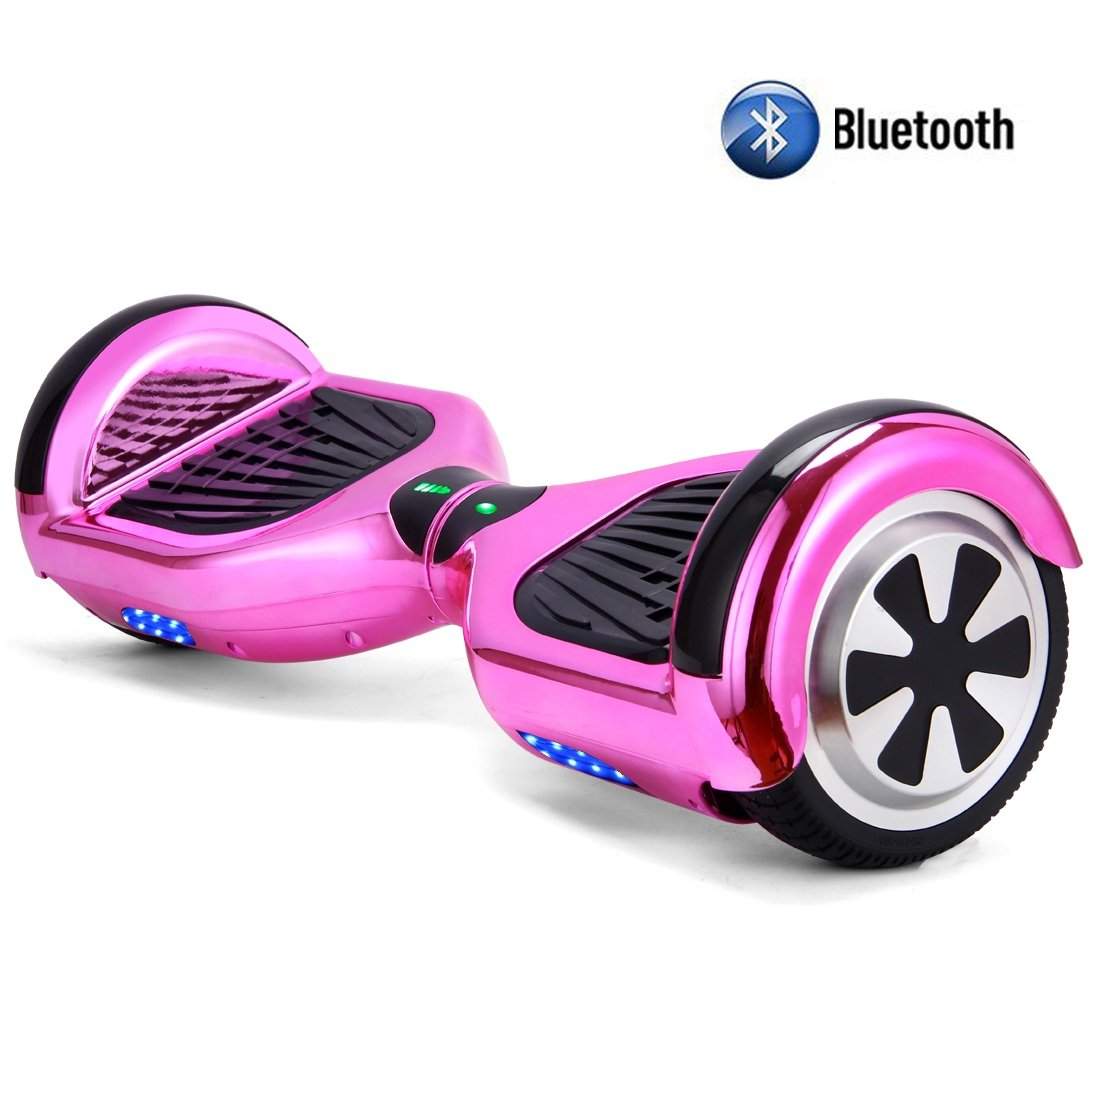 STF-Life UL 2272 Certified Hoverboard with Bluetooth Speaker and LED Lights, Smart Personal Two- Wheel Electric Self Balancing Scooter Transporter for Kids and Adults- Chrome Pink by STF-Life